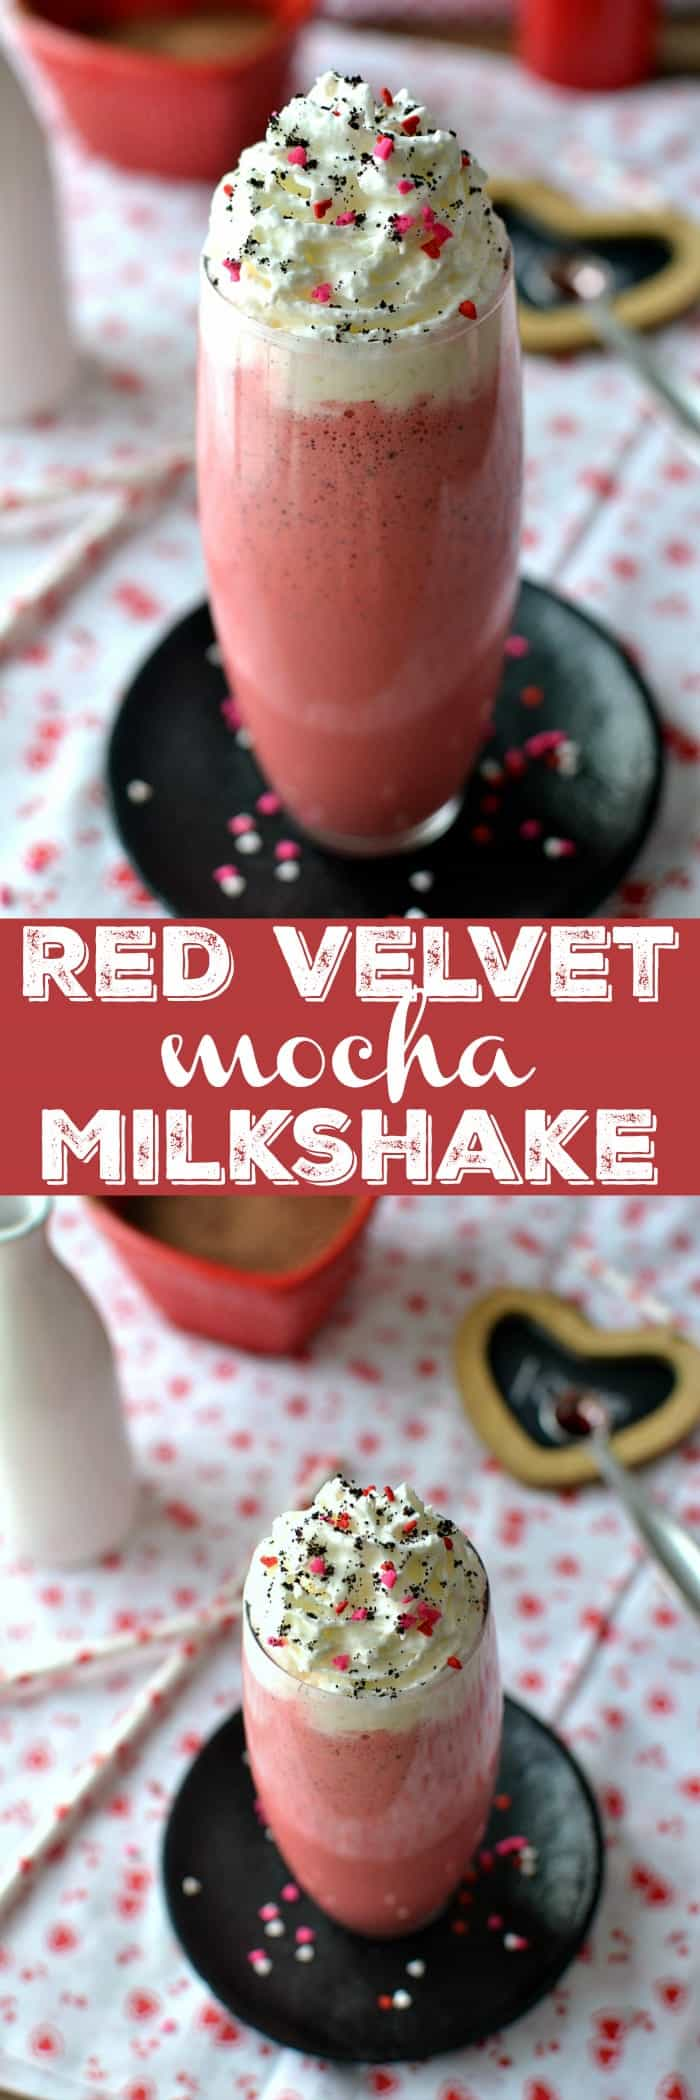 Red Velvet meets Mocha in a delicious milkshake - complete with a touch of cream cheese! The perfect treat for Valentine's Day!